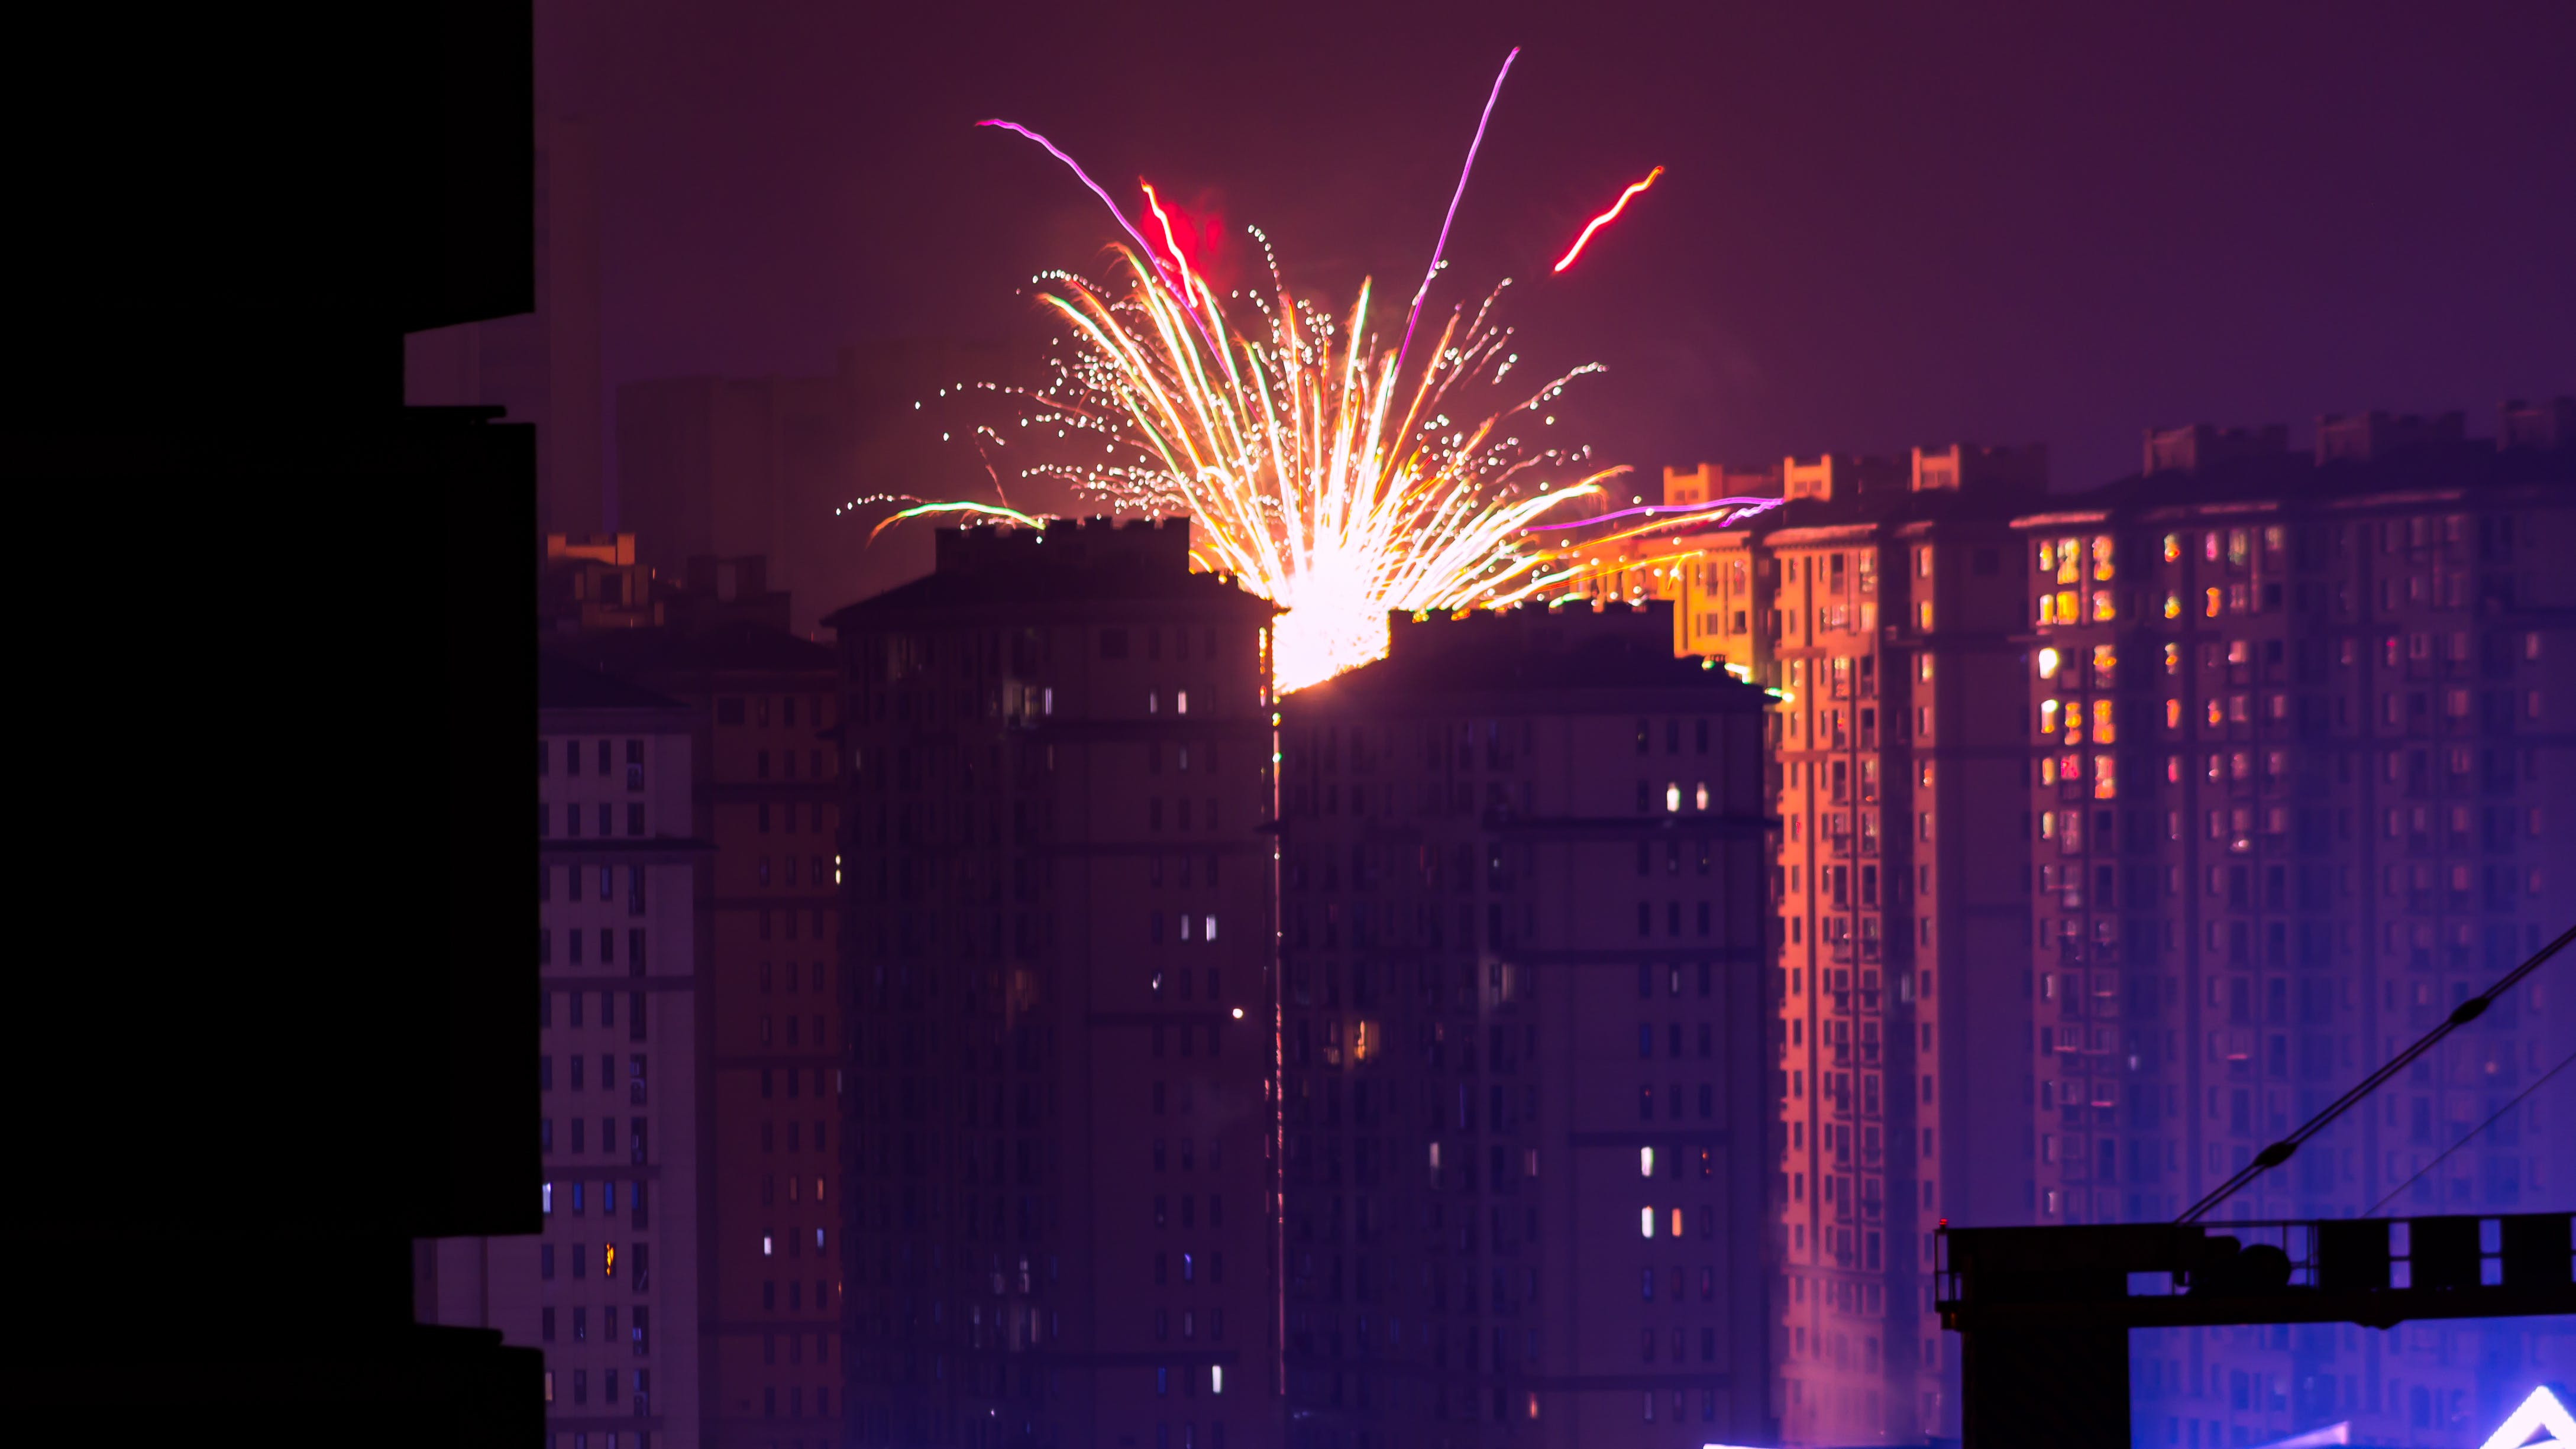 Fireworks Display Near High Rise Buildings during Nighttime